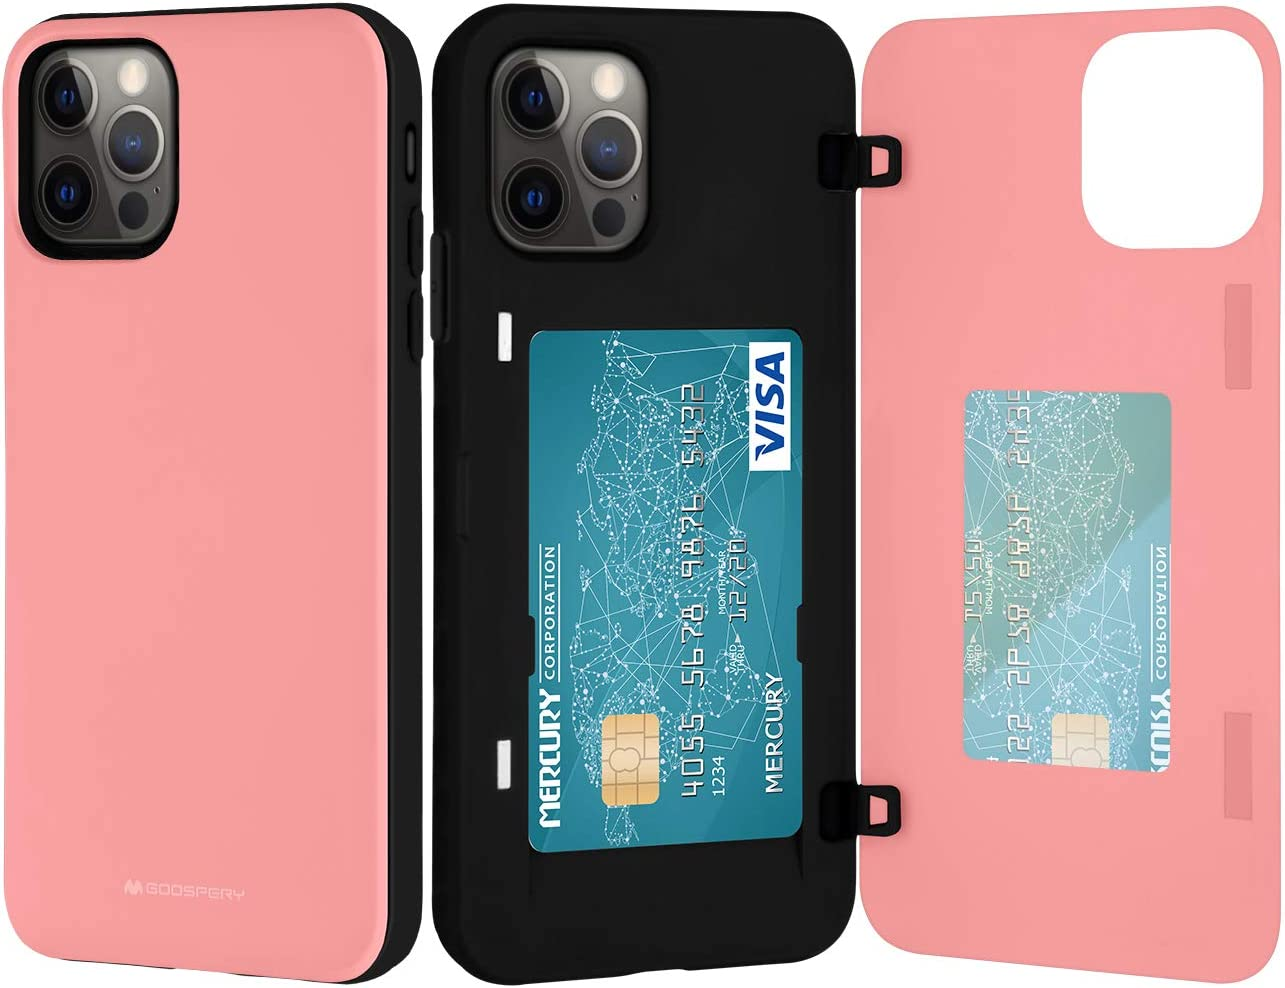 Goospery iPhone 12 Pro Max Wallet Case with Card Holder, Protective Dual Layer Bumper Phone Case (Pink) IP12PM-MDB-PNK